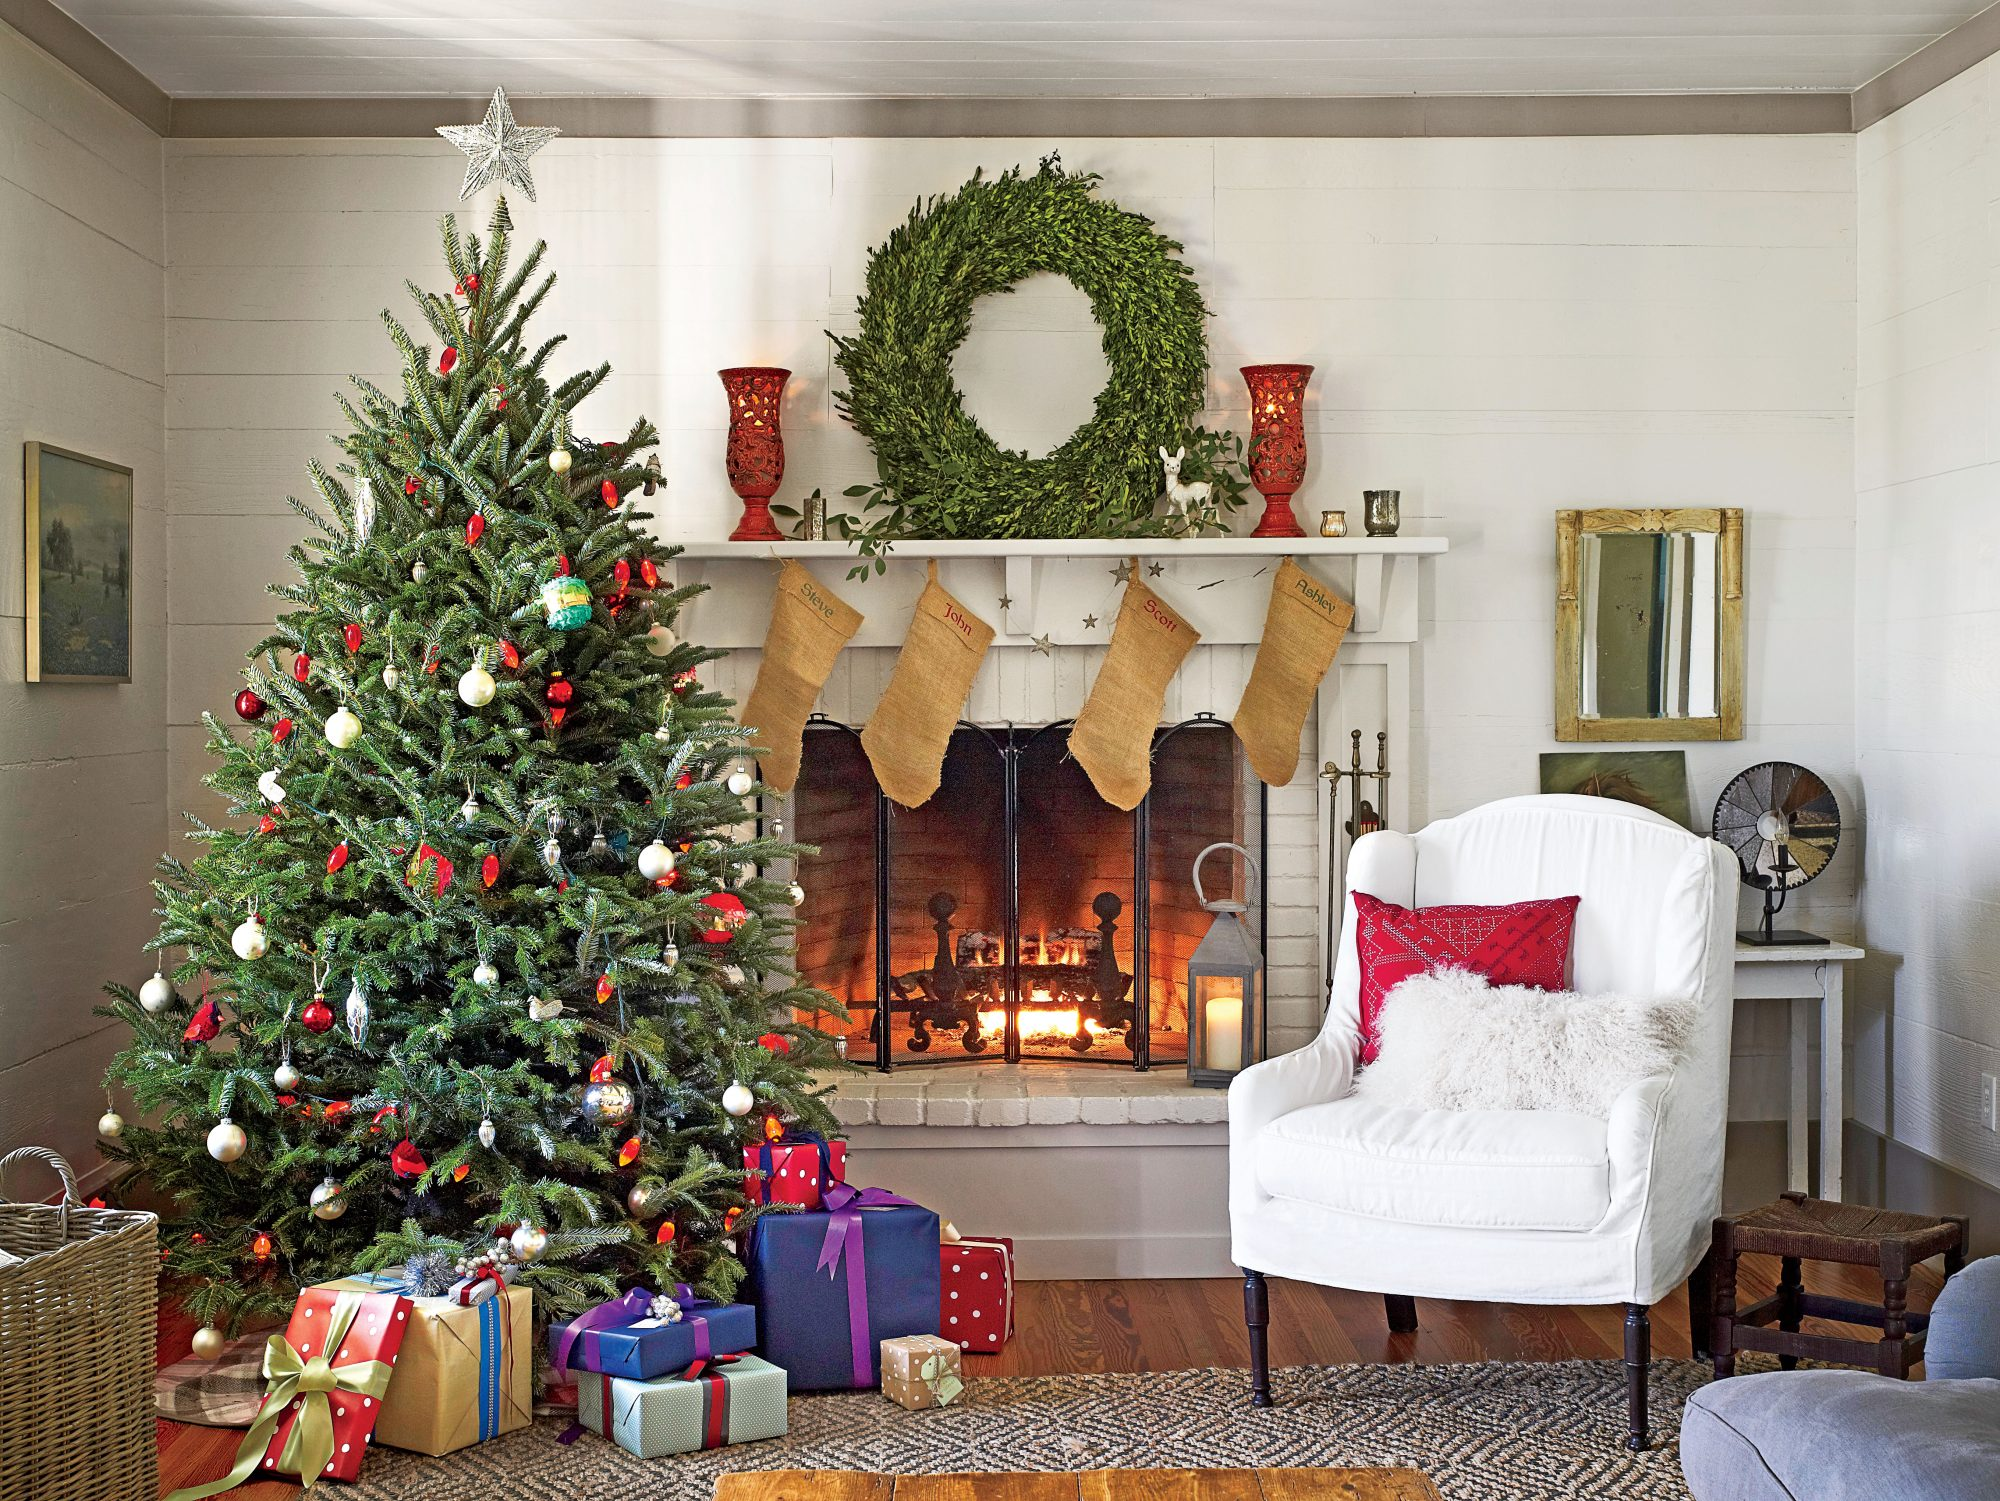 Christmas Tree In Living Room Best Christmas Tree Decorating Ideas  Southern Living Design Inspiration